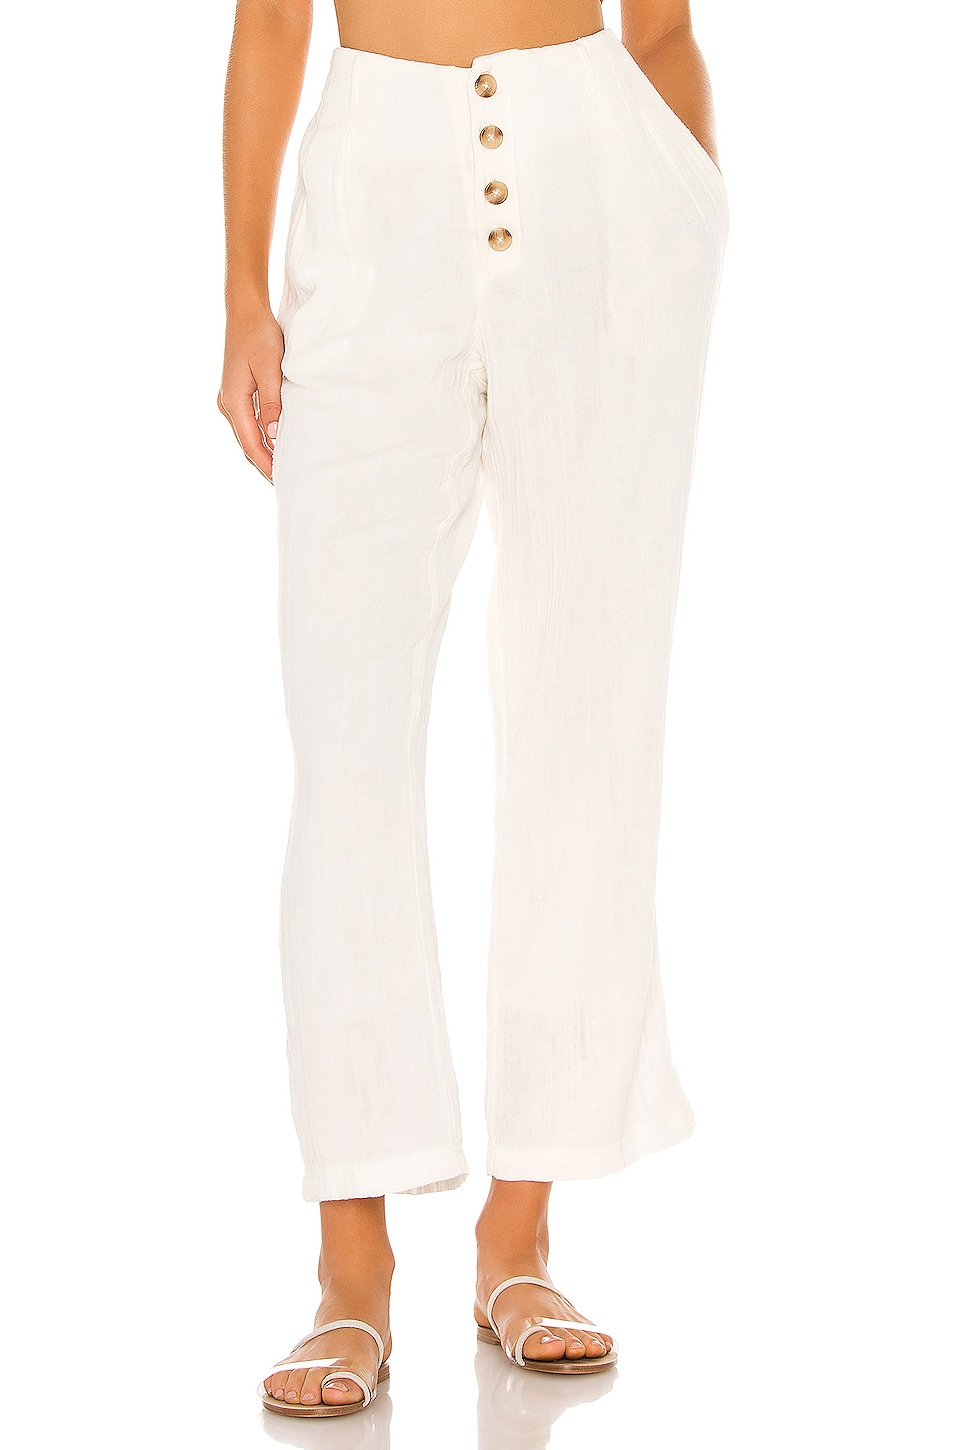 L*SPACE Georgie Pant in Cream